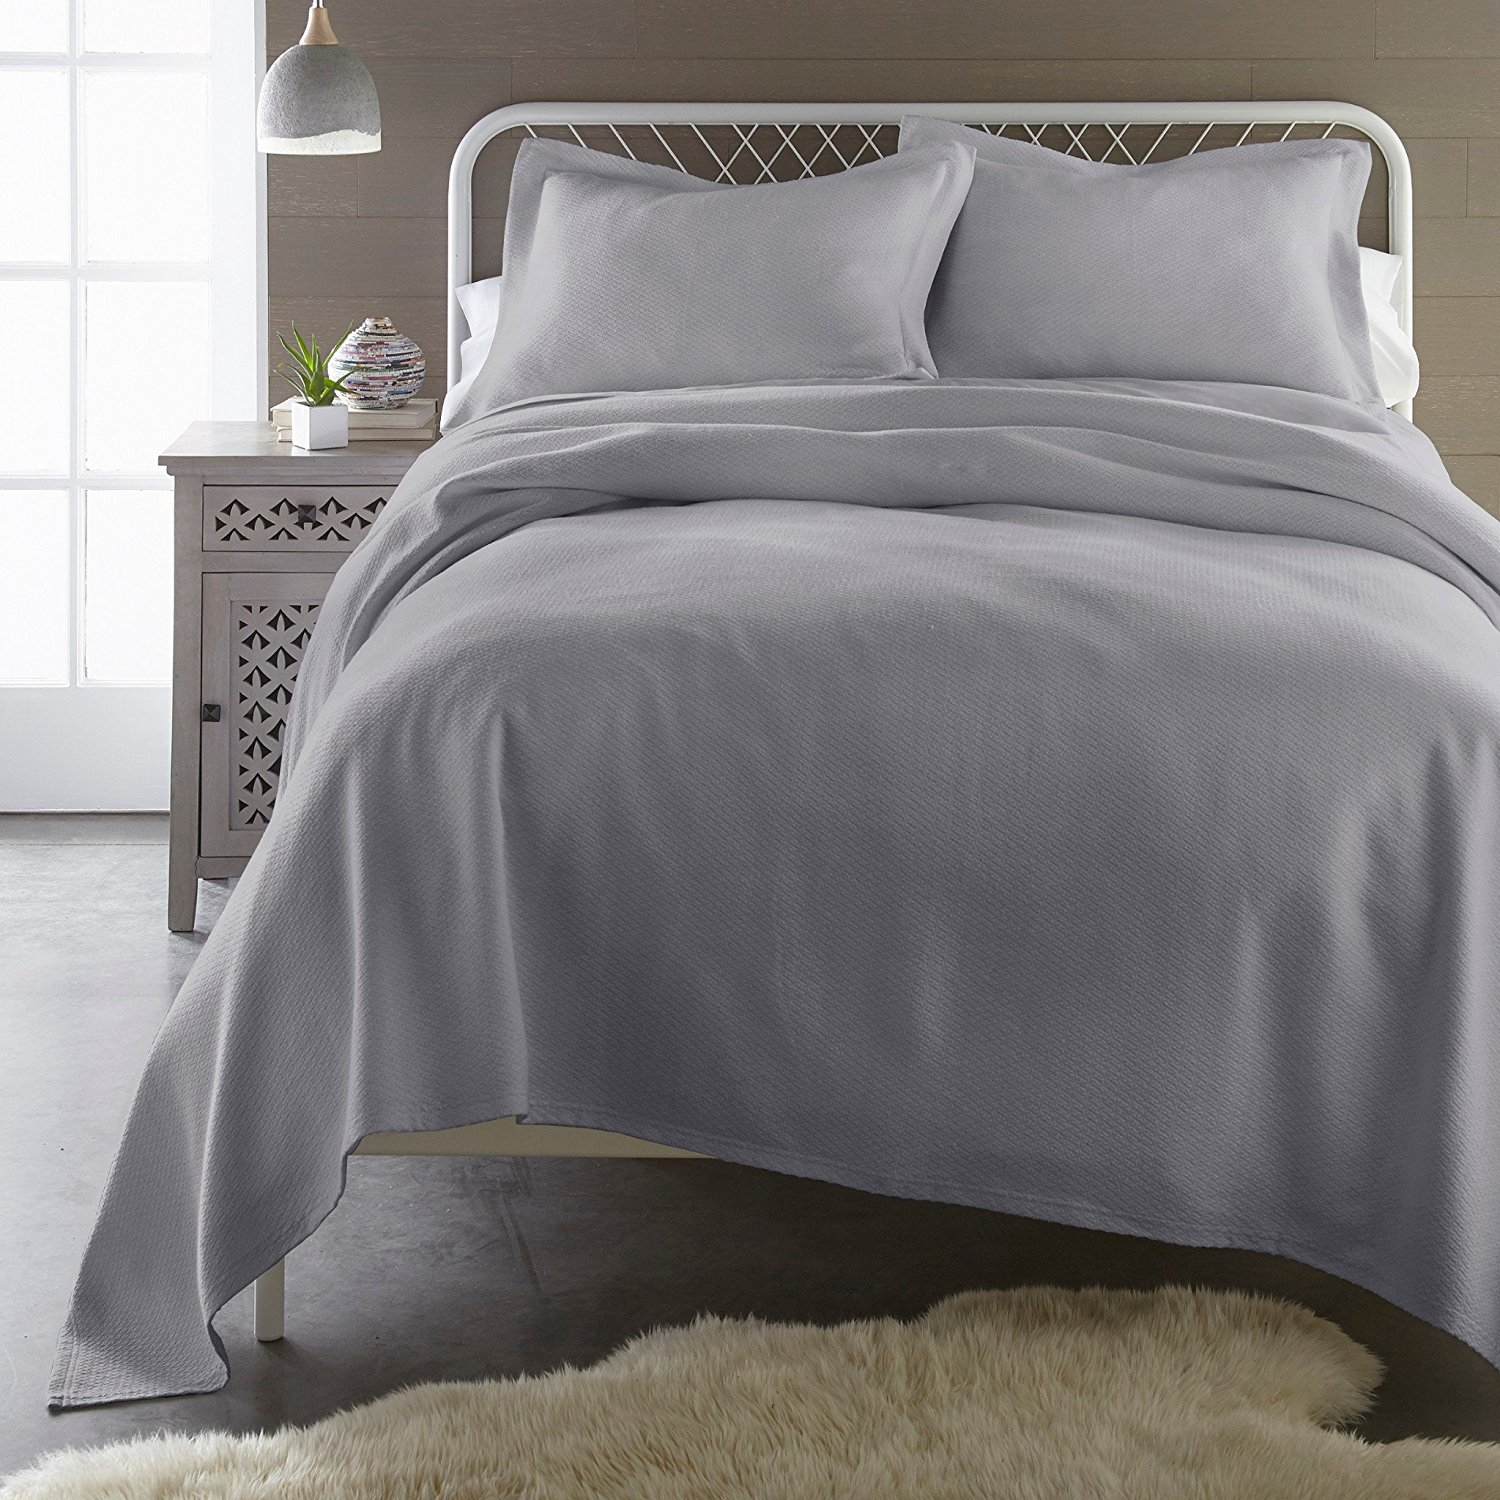 Sterling Creek Gavin 3-Piece Solid Woven 100% Soft-Cotton Jacquard Matelassé Bedspread Coverlet Set